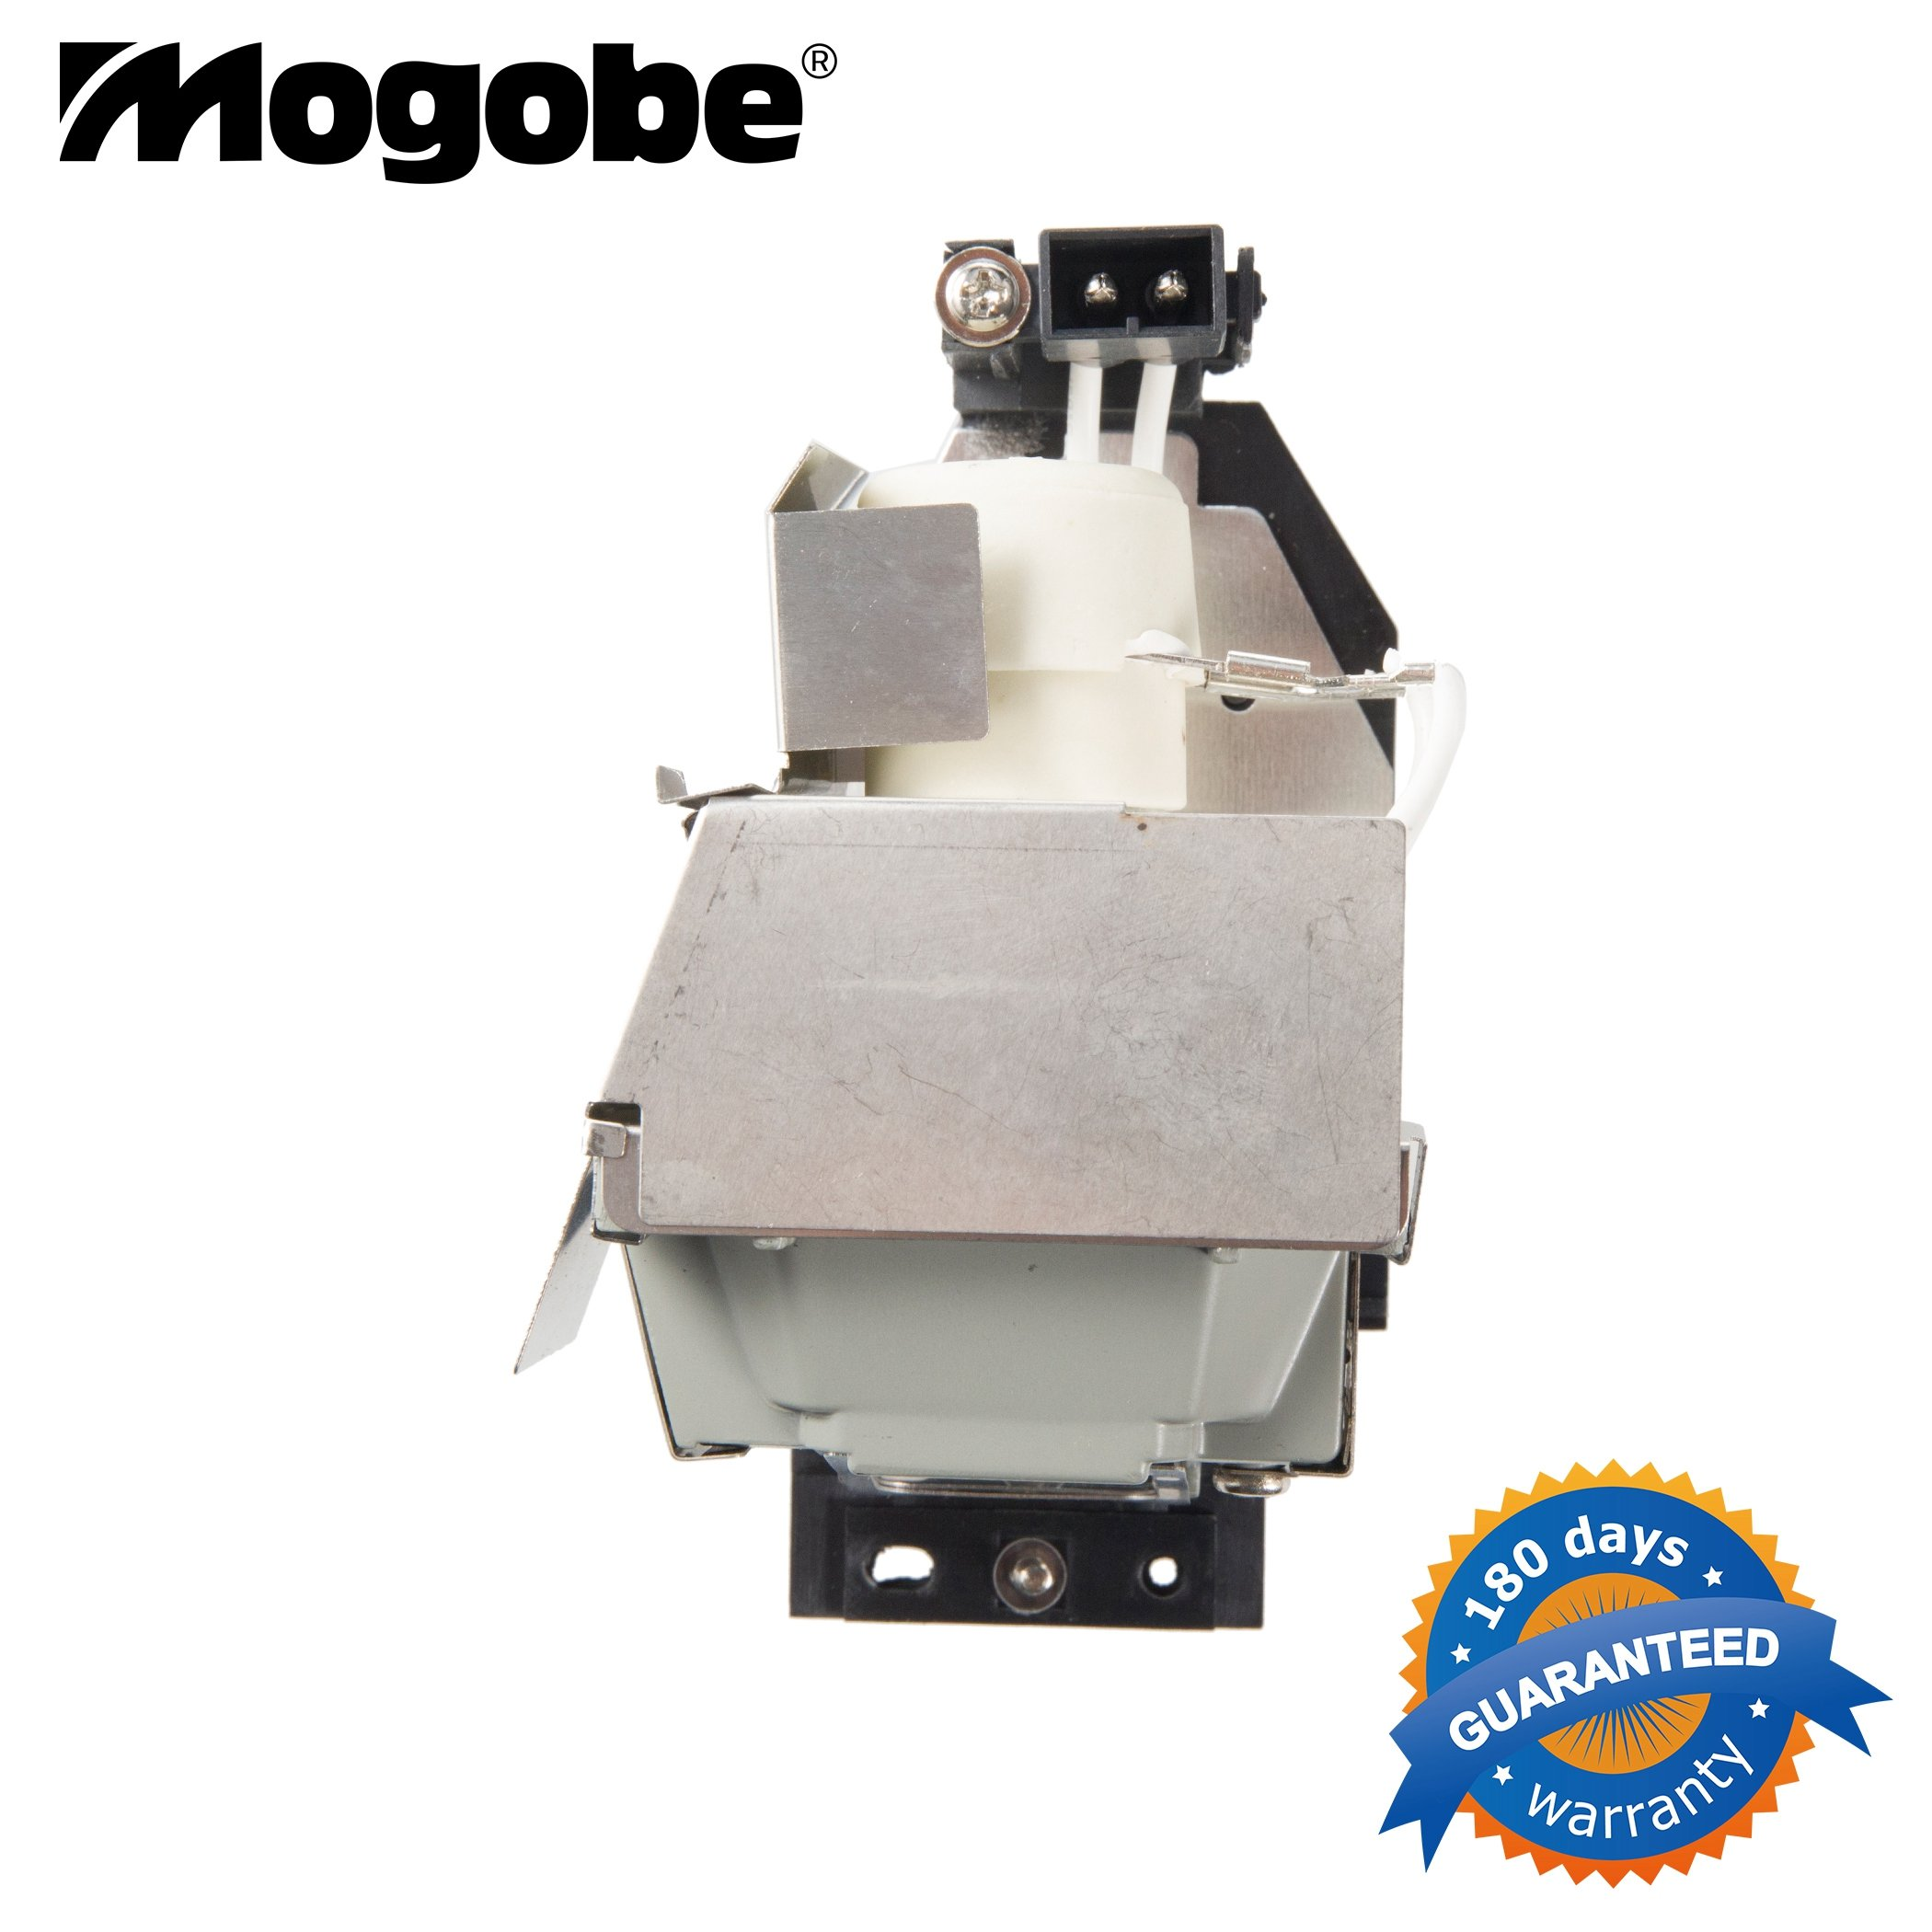 For SP-LAMP-052 Replacement Projector Bulb / lamp In Housing Fit INFOCUS X20; X21; LPX20; LPx21; IN1503 projectors by Mogobe